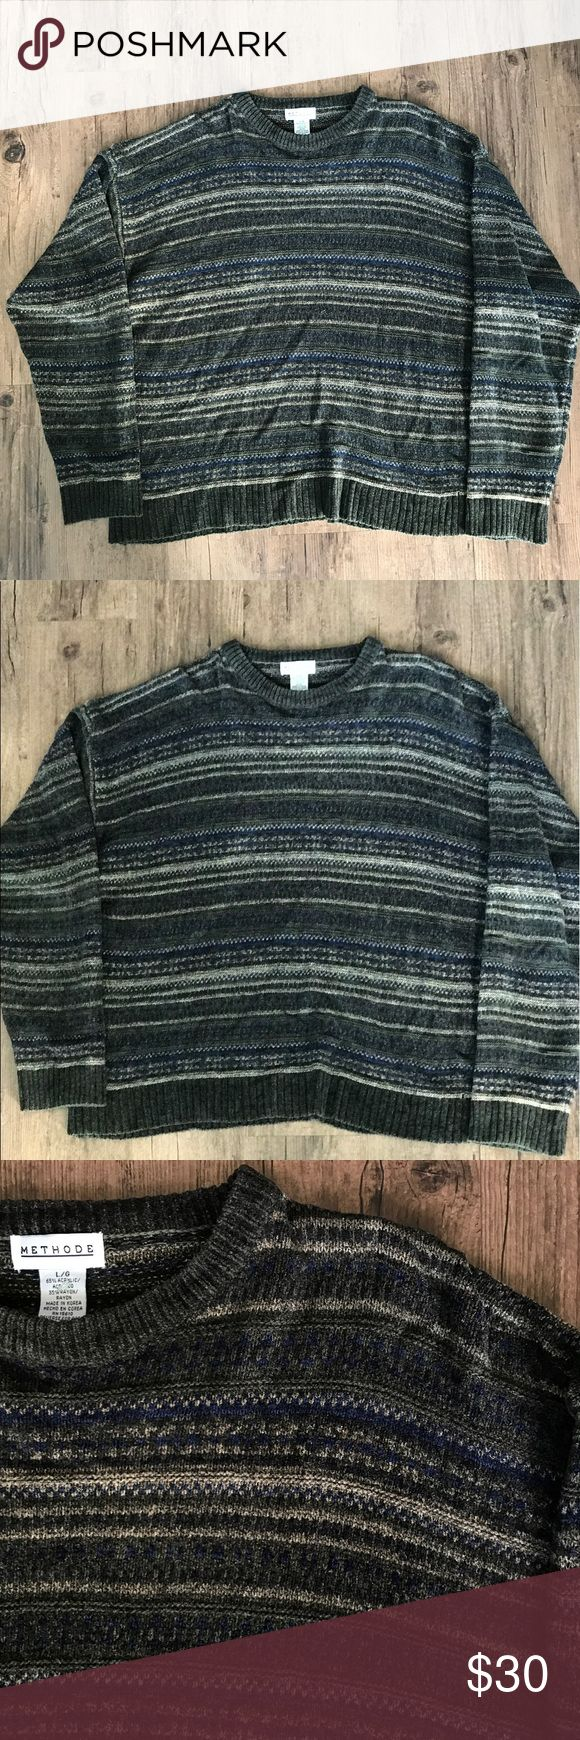 🌿 METHODE SWEATER 🌿 (MENS/WOMENS) 🌿Large methods sweater. Not very thick at all but fits true to size. 🌿    Be sure to check out my website https://jmmycollins.com!    tags: treasure island, polo ralph lauren, yeezy, adidas nmd, thrasher, nike, adidas, supreme, rsvp gallery, ice cream, bape, bbc, billionaire boys club, bbc, chaps, hanes, thrift, thrifted, champion, no flaws, vintage, tommy hilfiger, strapback, dad hat, oversized, boyfriend tee, starter, h&m, rag o rama, women, men…